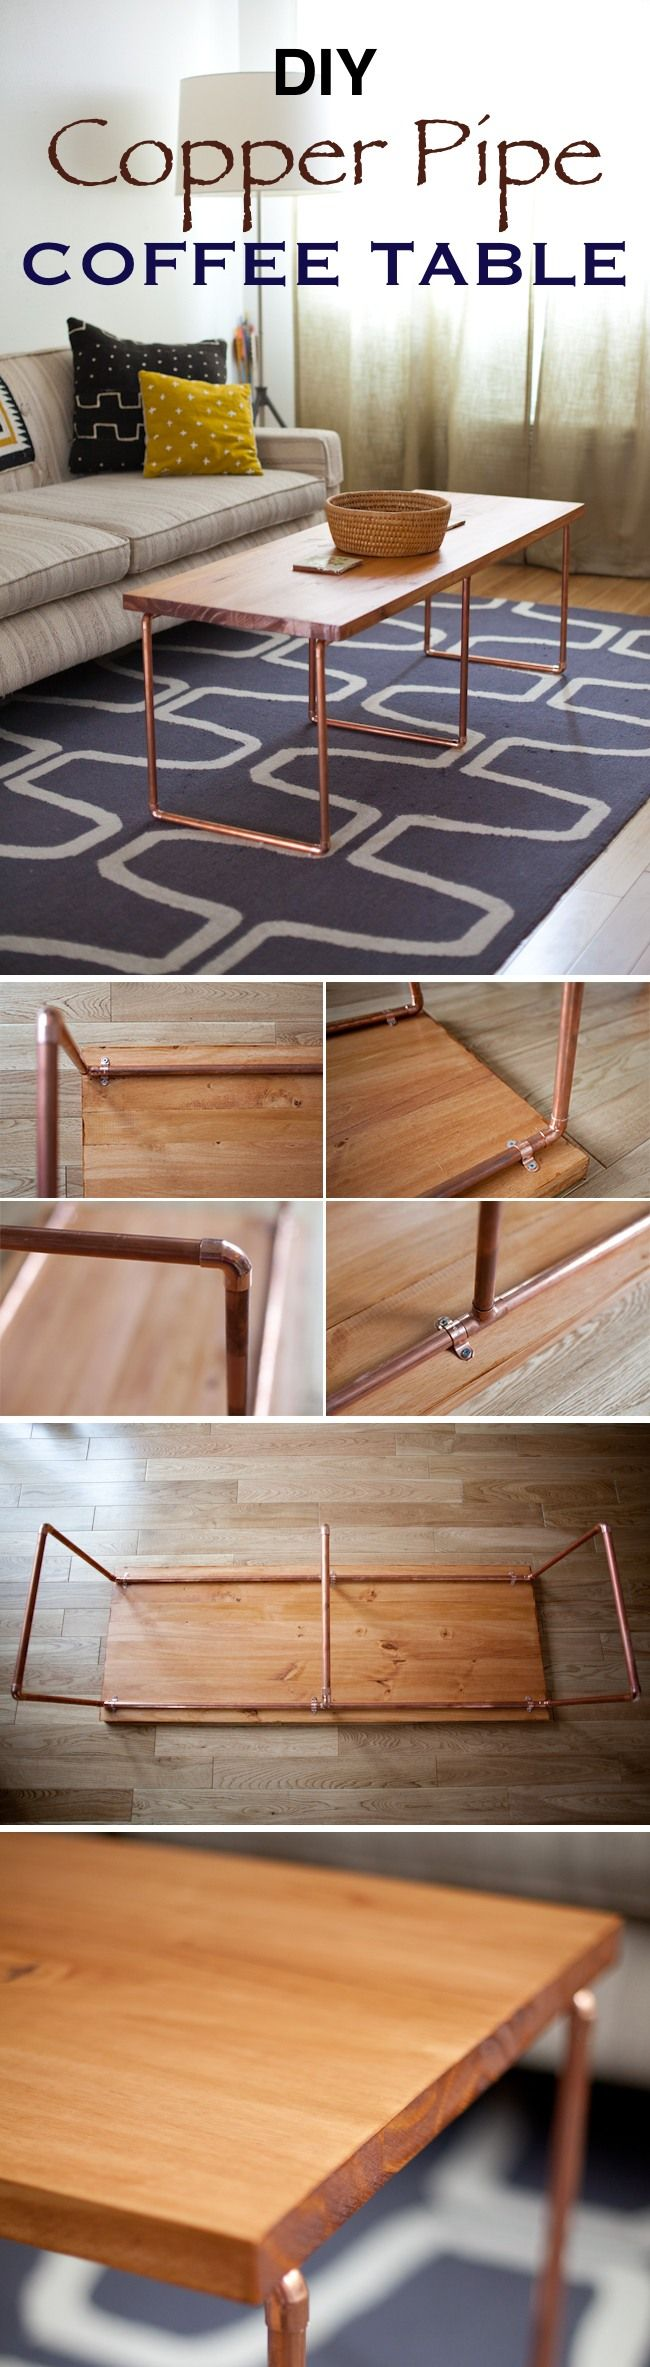 Easy diy coffee table - 15 Creative Diy Coffee Table Ideas You Can Build Yourself